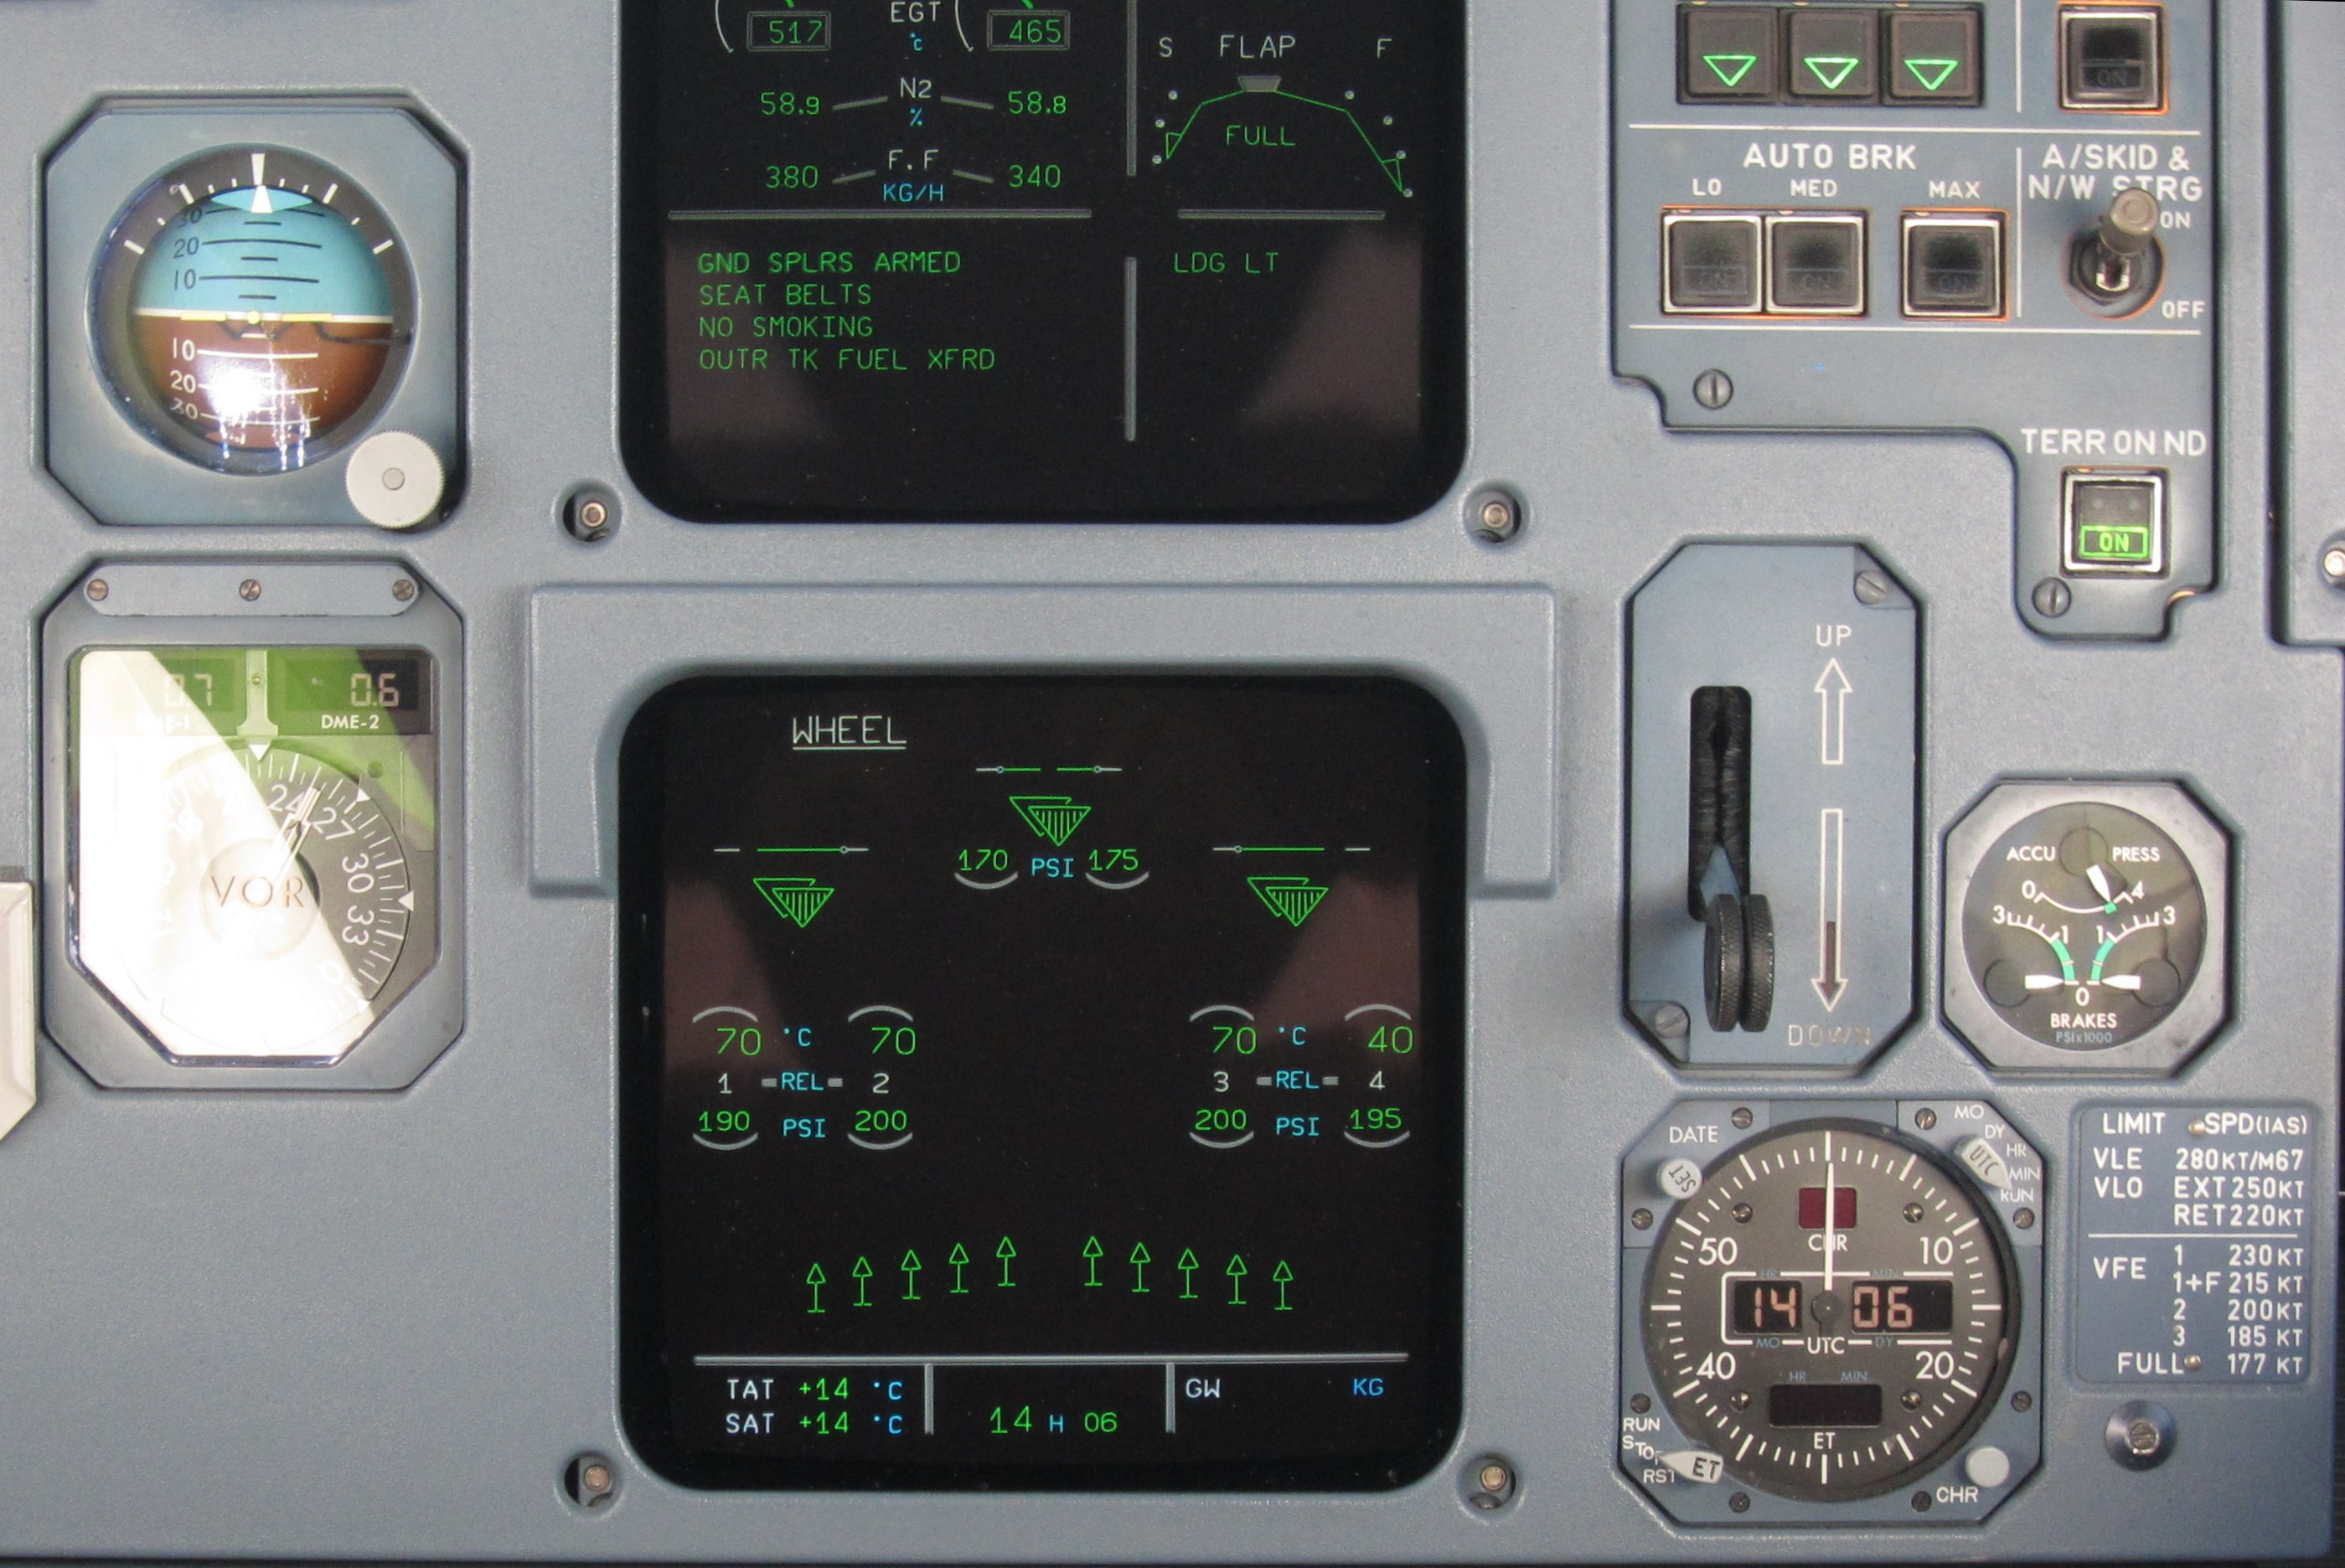 File:Center panel display indicating spoilers deployment in